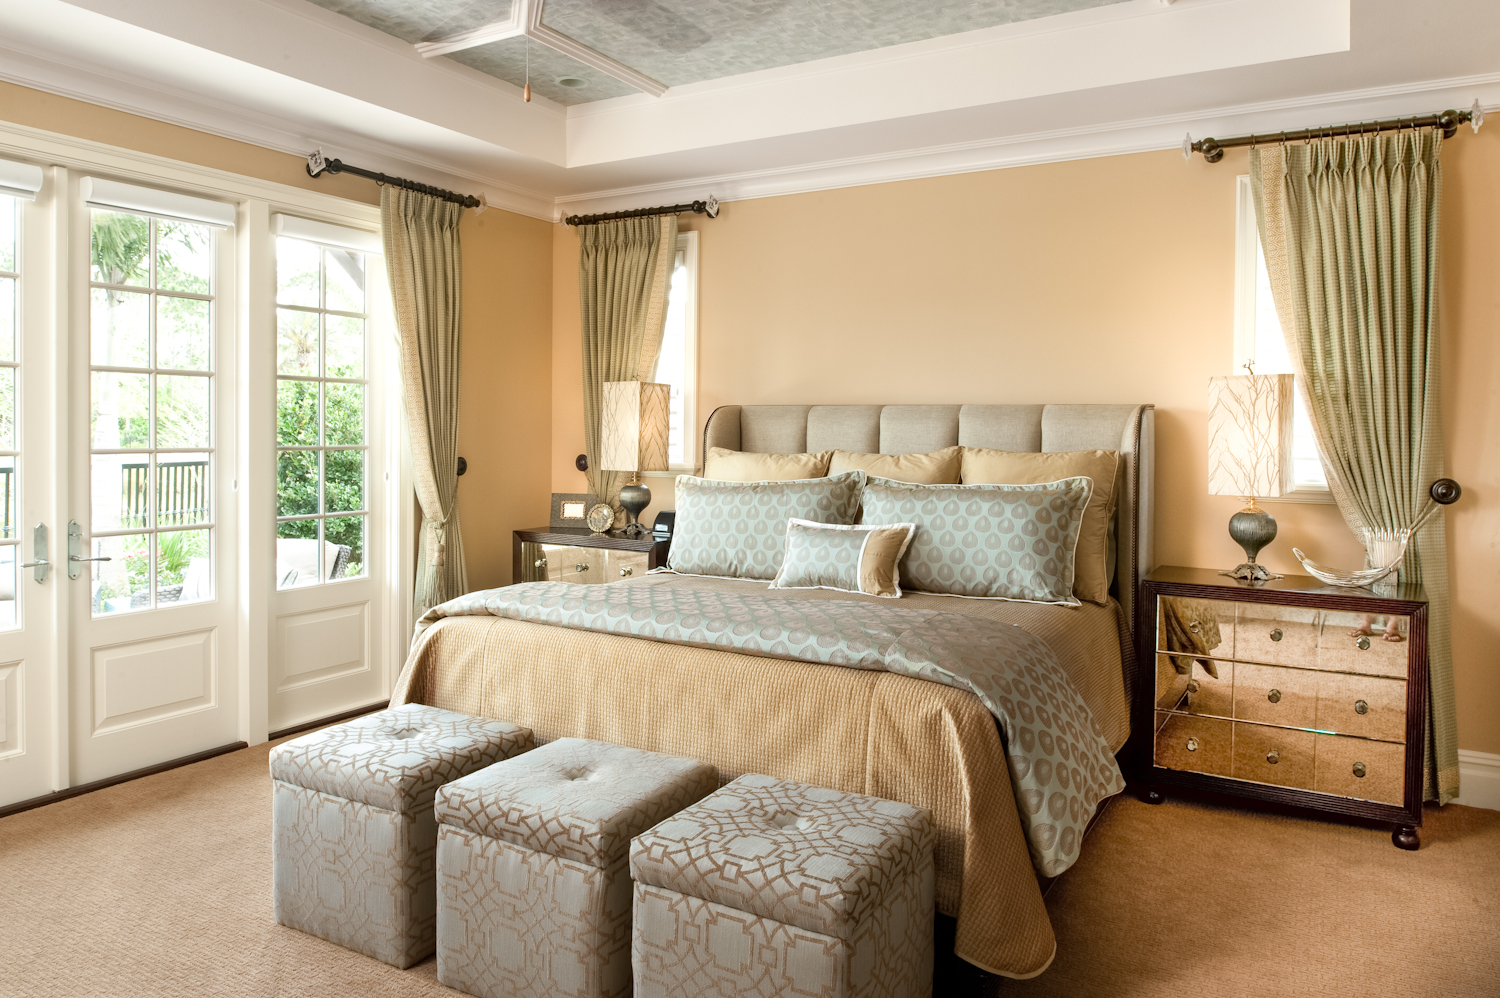 master bedroom ideas 45 master bedroom ideas for your home the wow style 6387